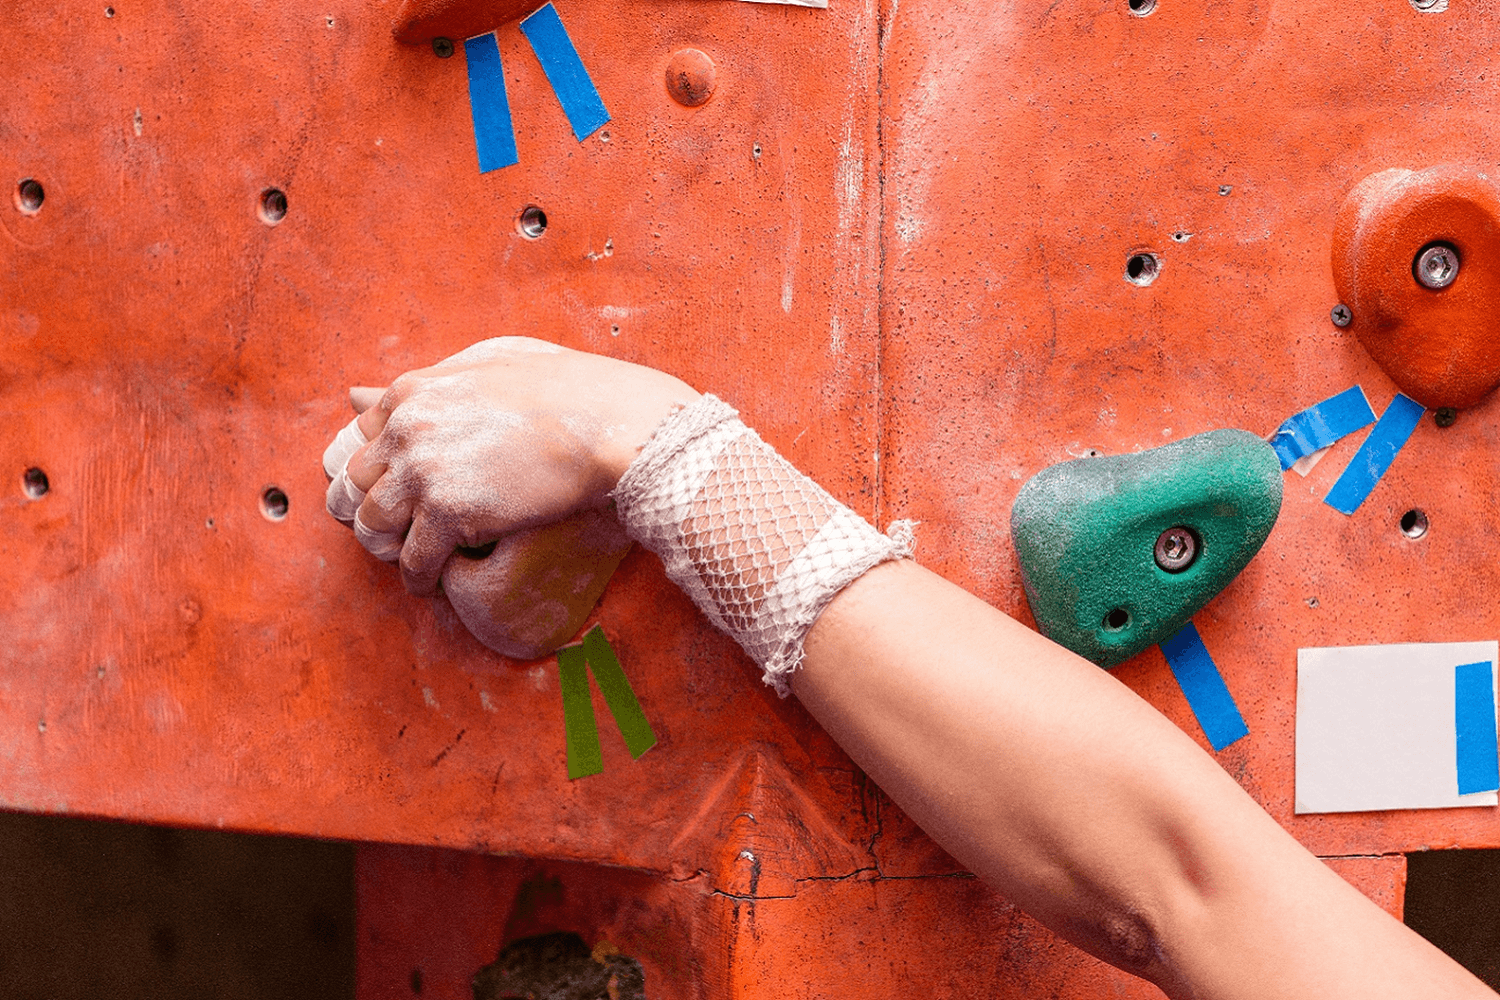 rock-climbing-injuries